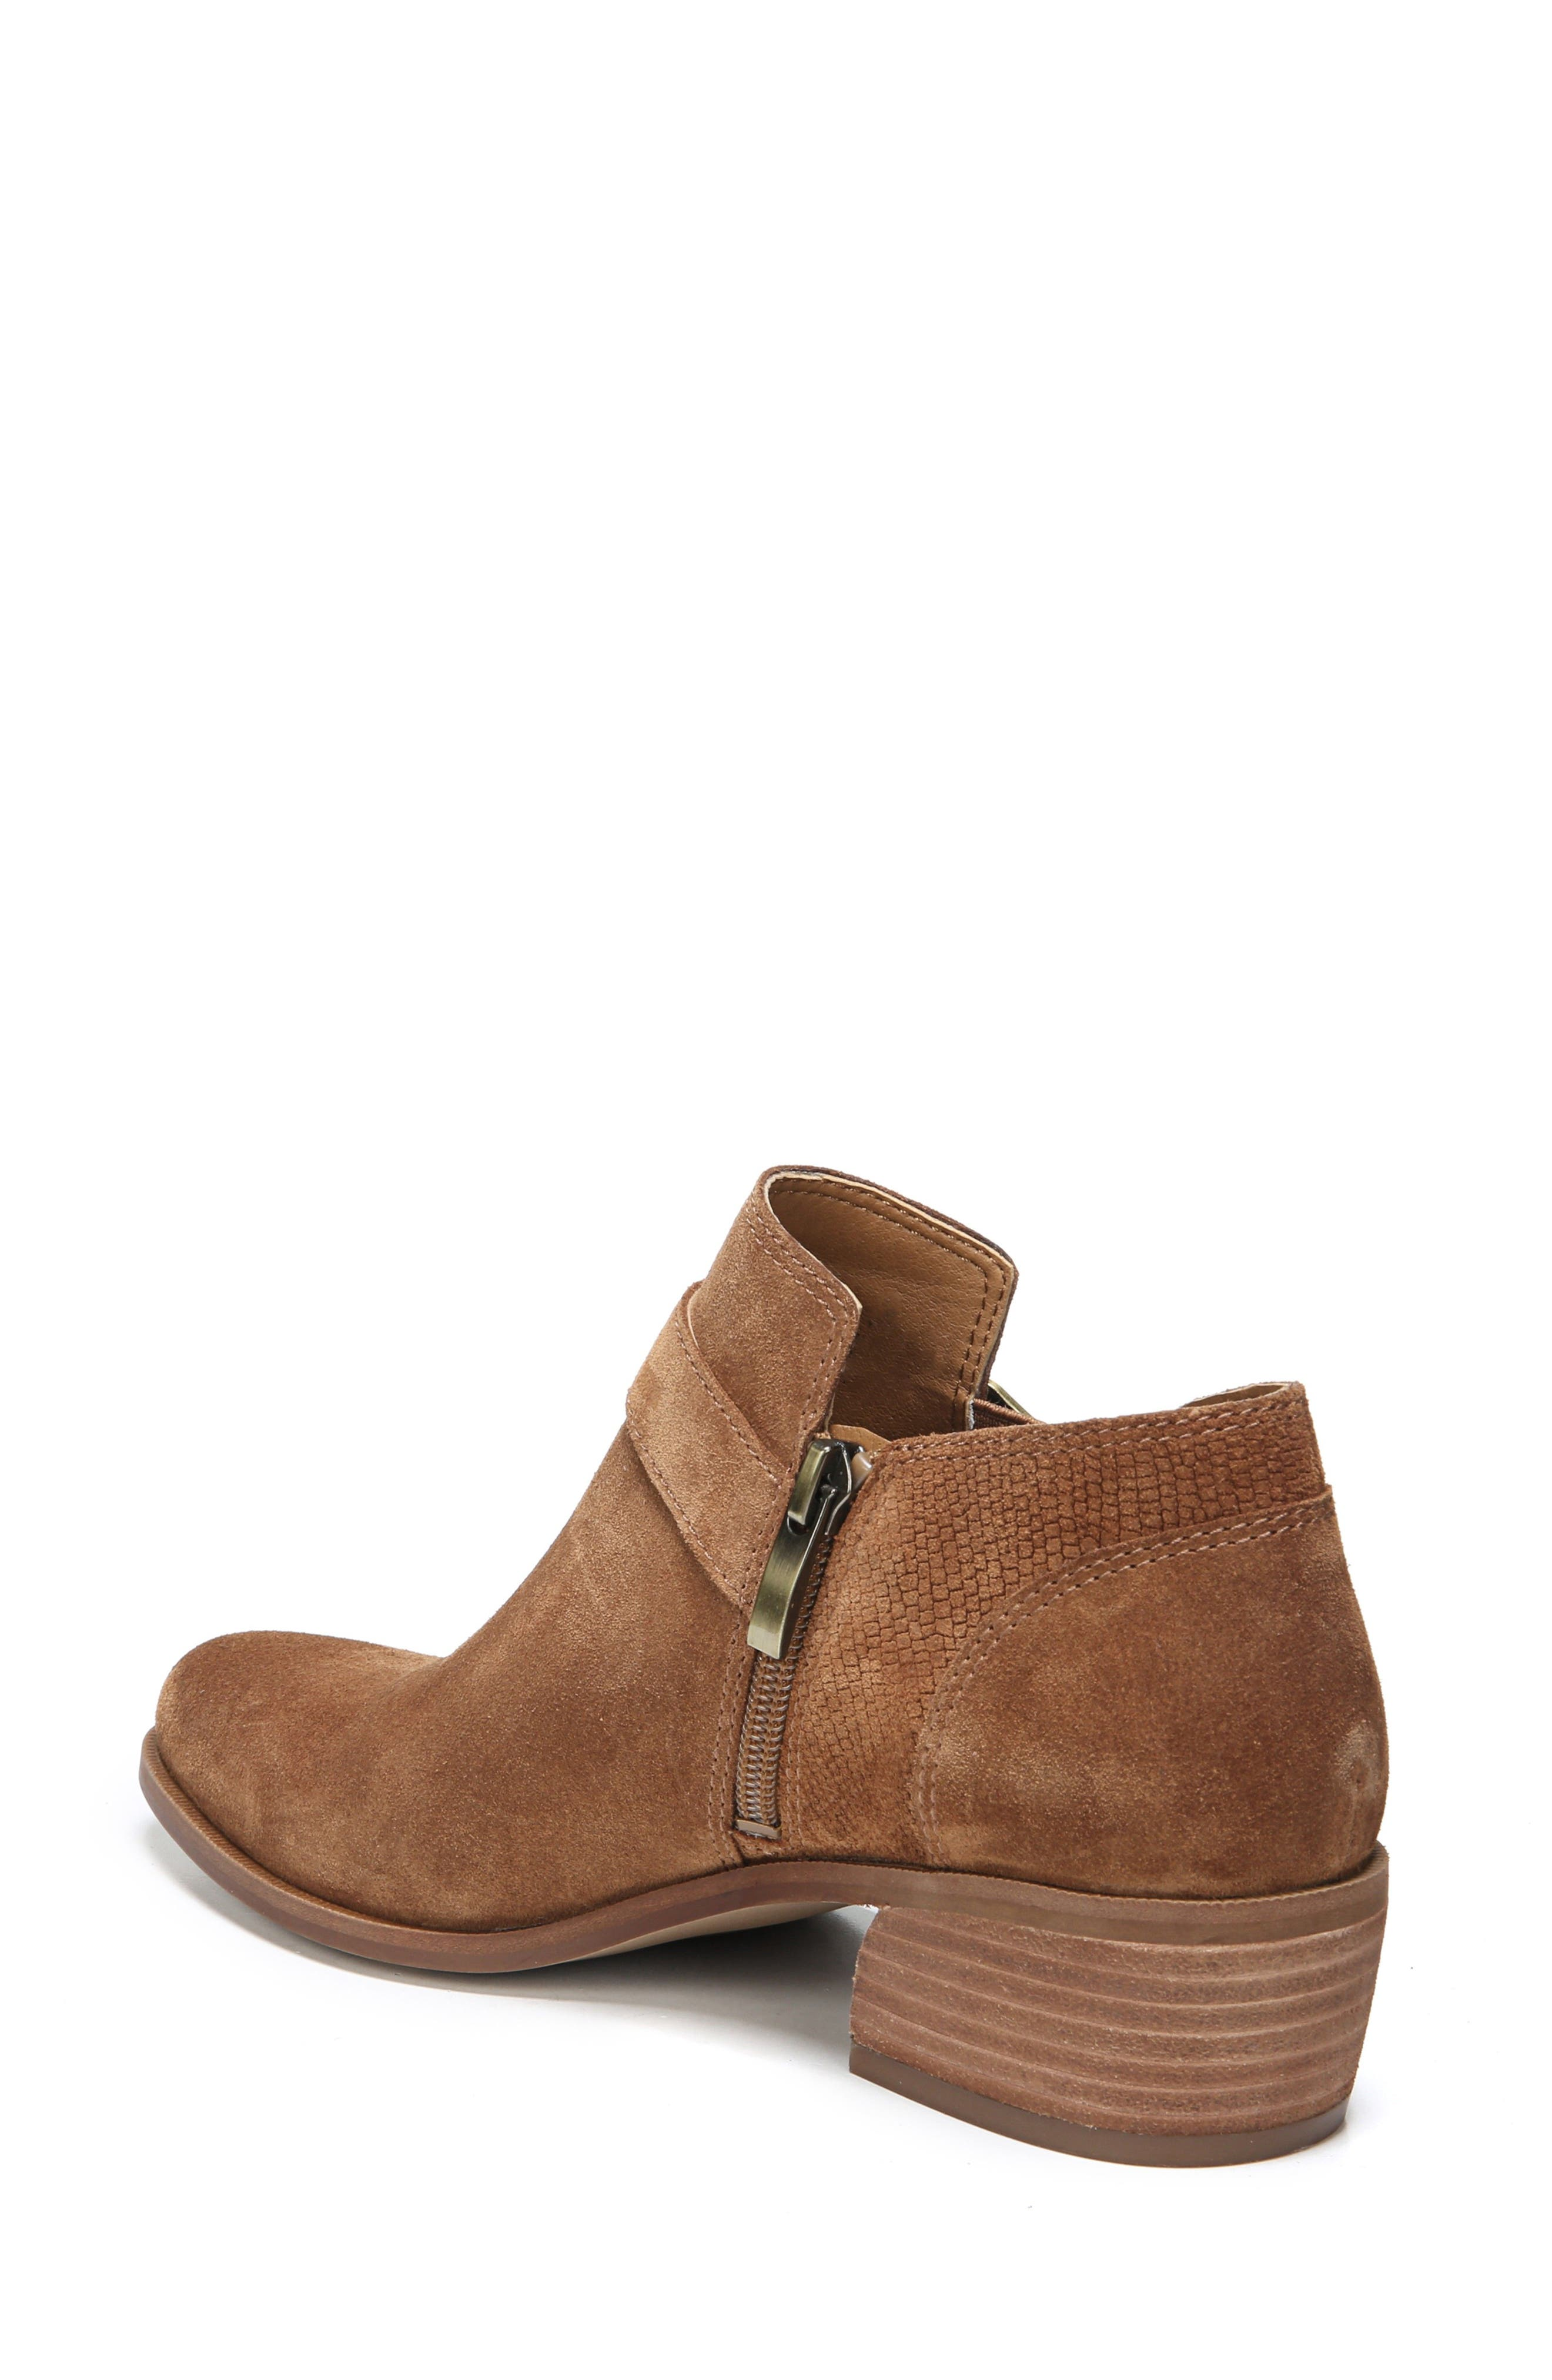 Penna Bootie,                             Alternate thumbnail 2, color,                             Whiskey Suede